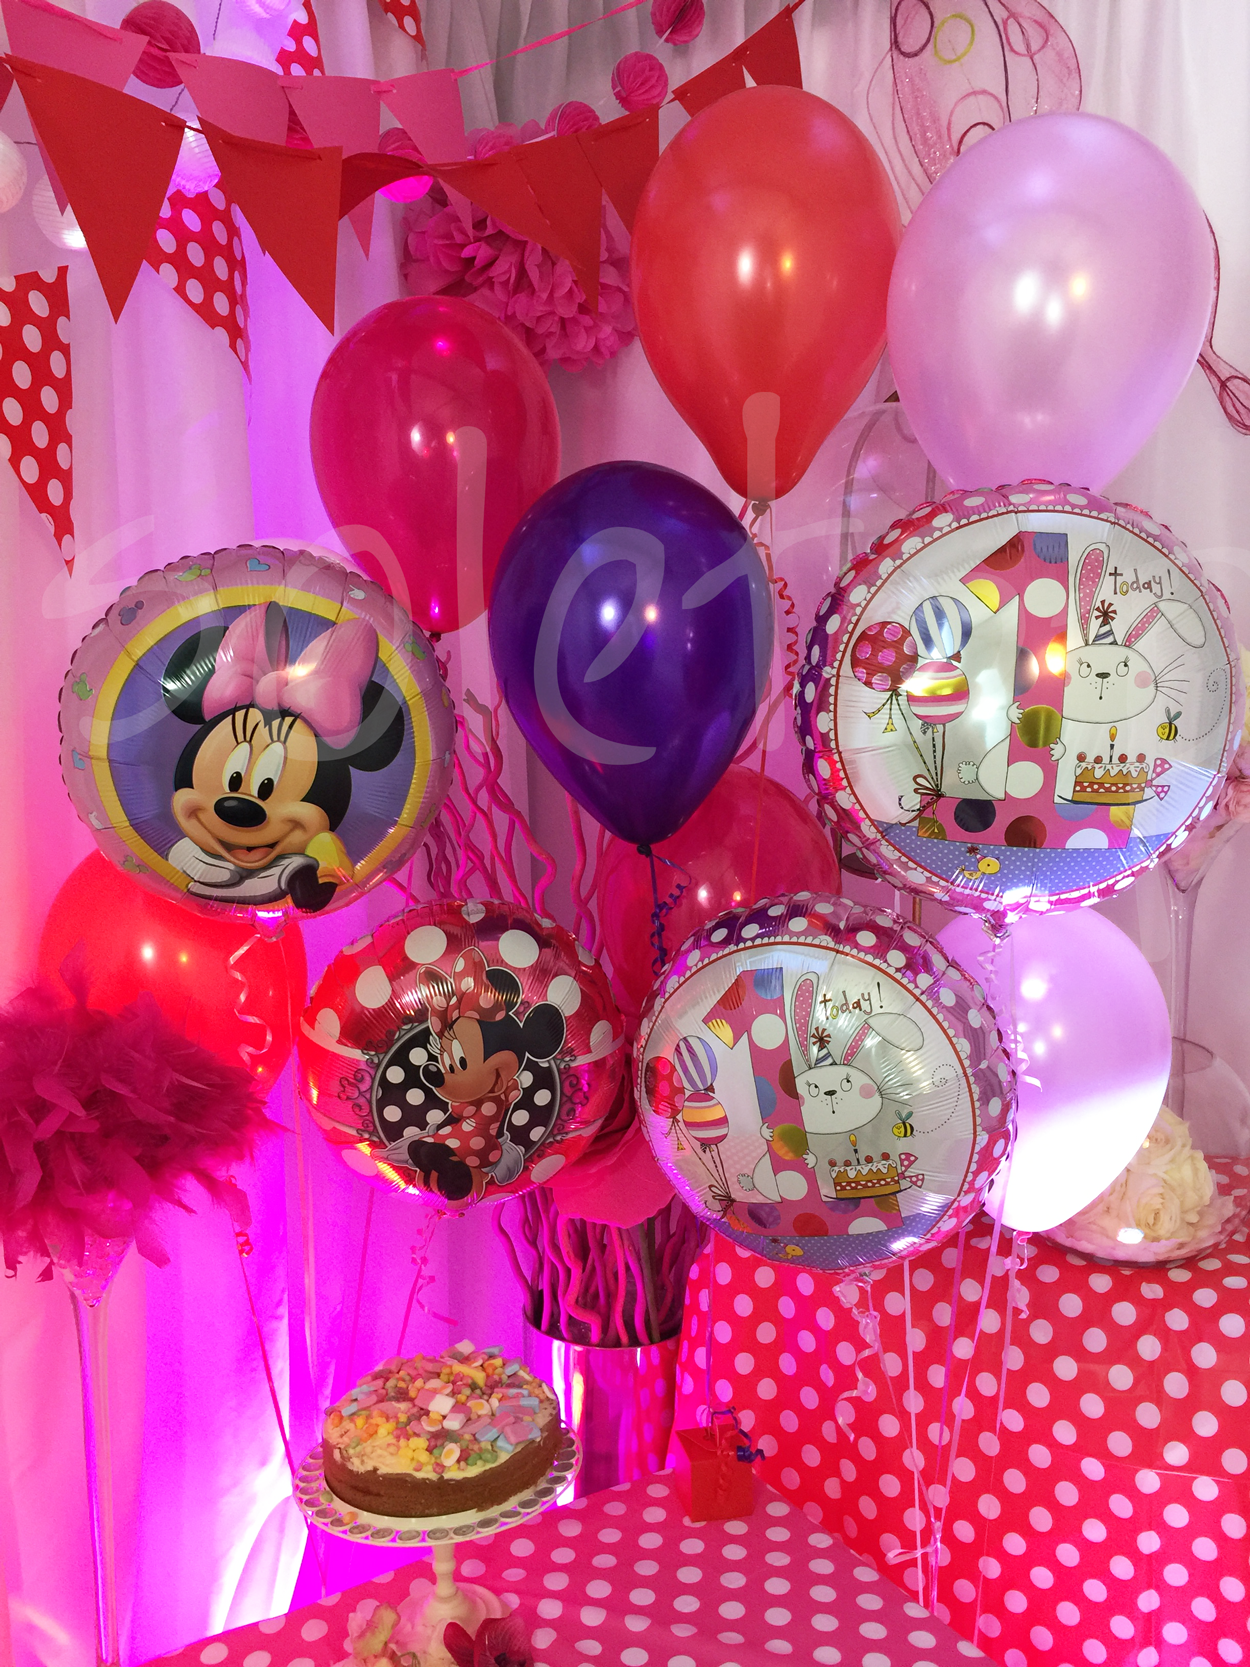 balloon-bouquet-party-decoration